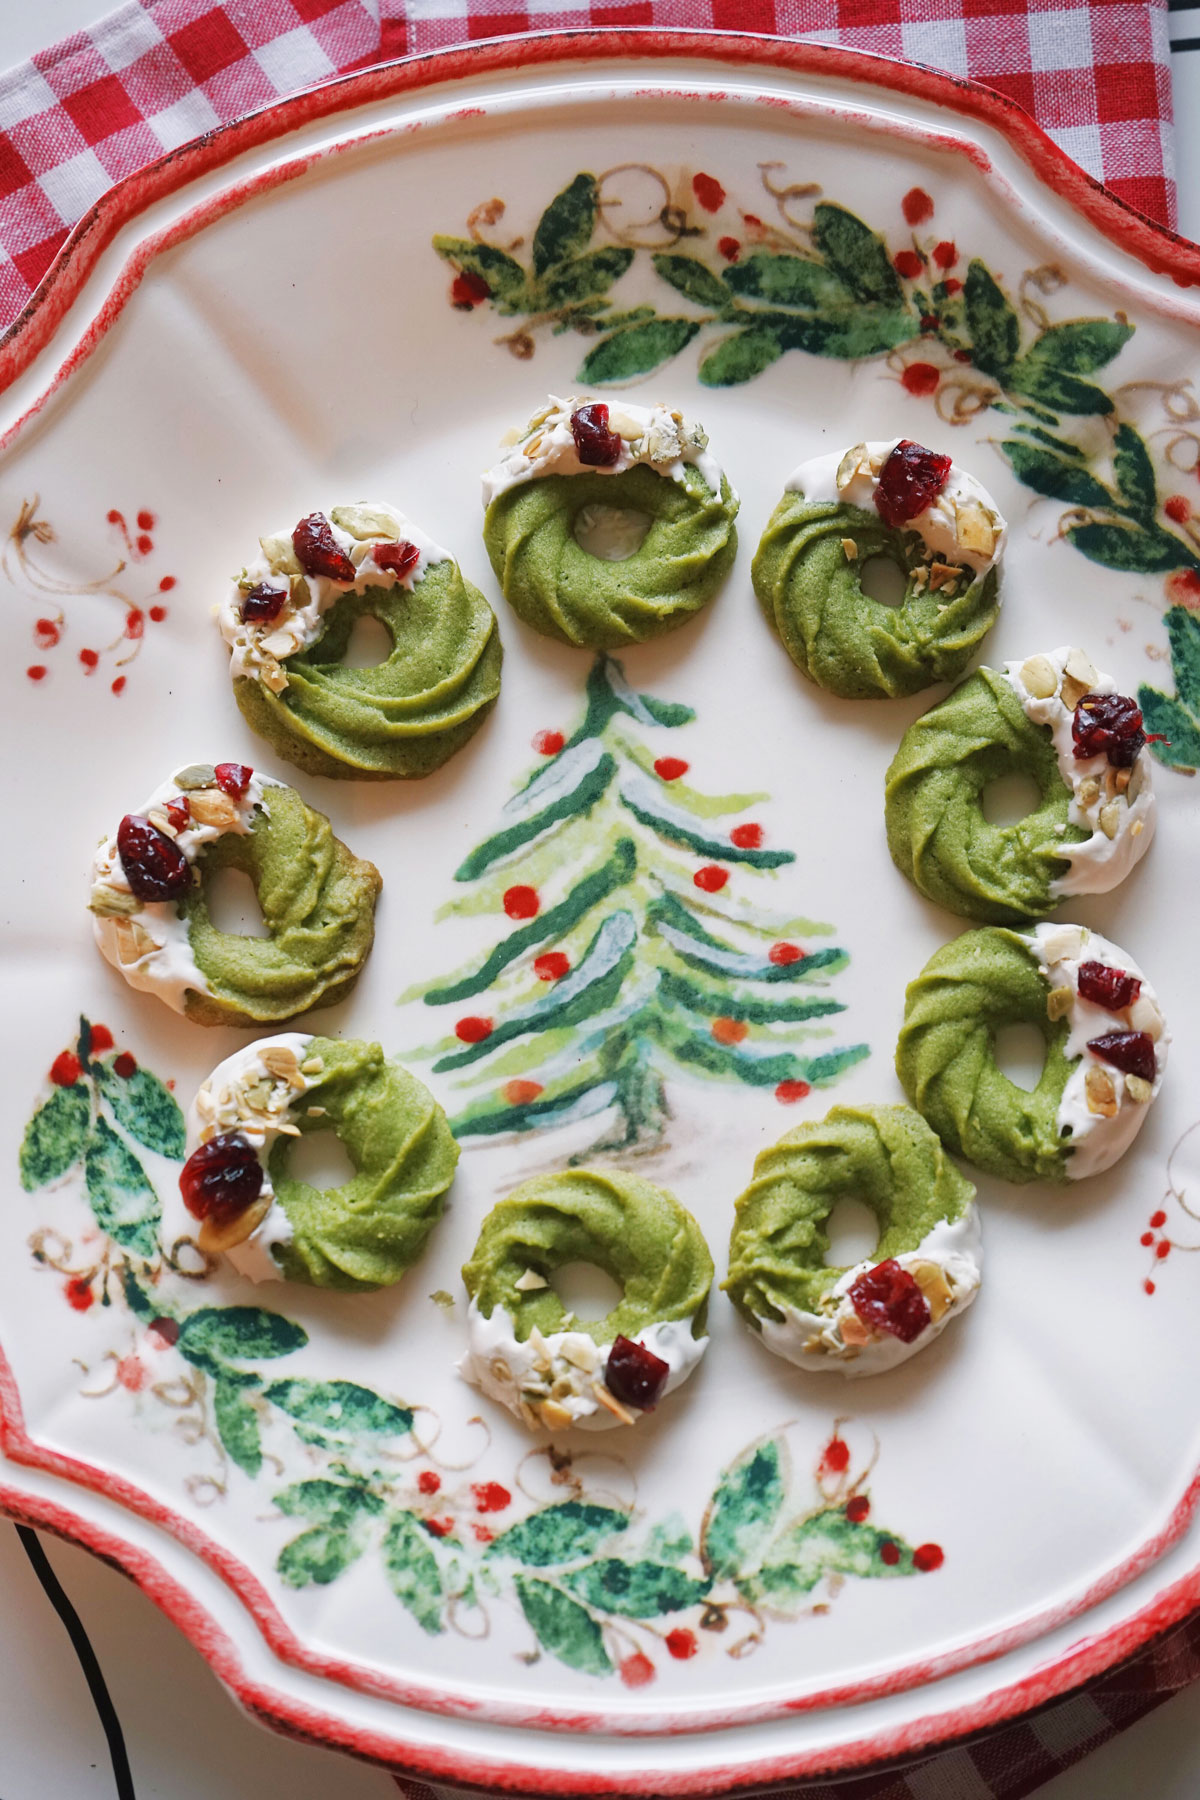 Herbakinglab-Matcha-Christmas-Wreath-Shortbread-in-plate